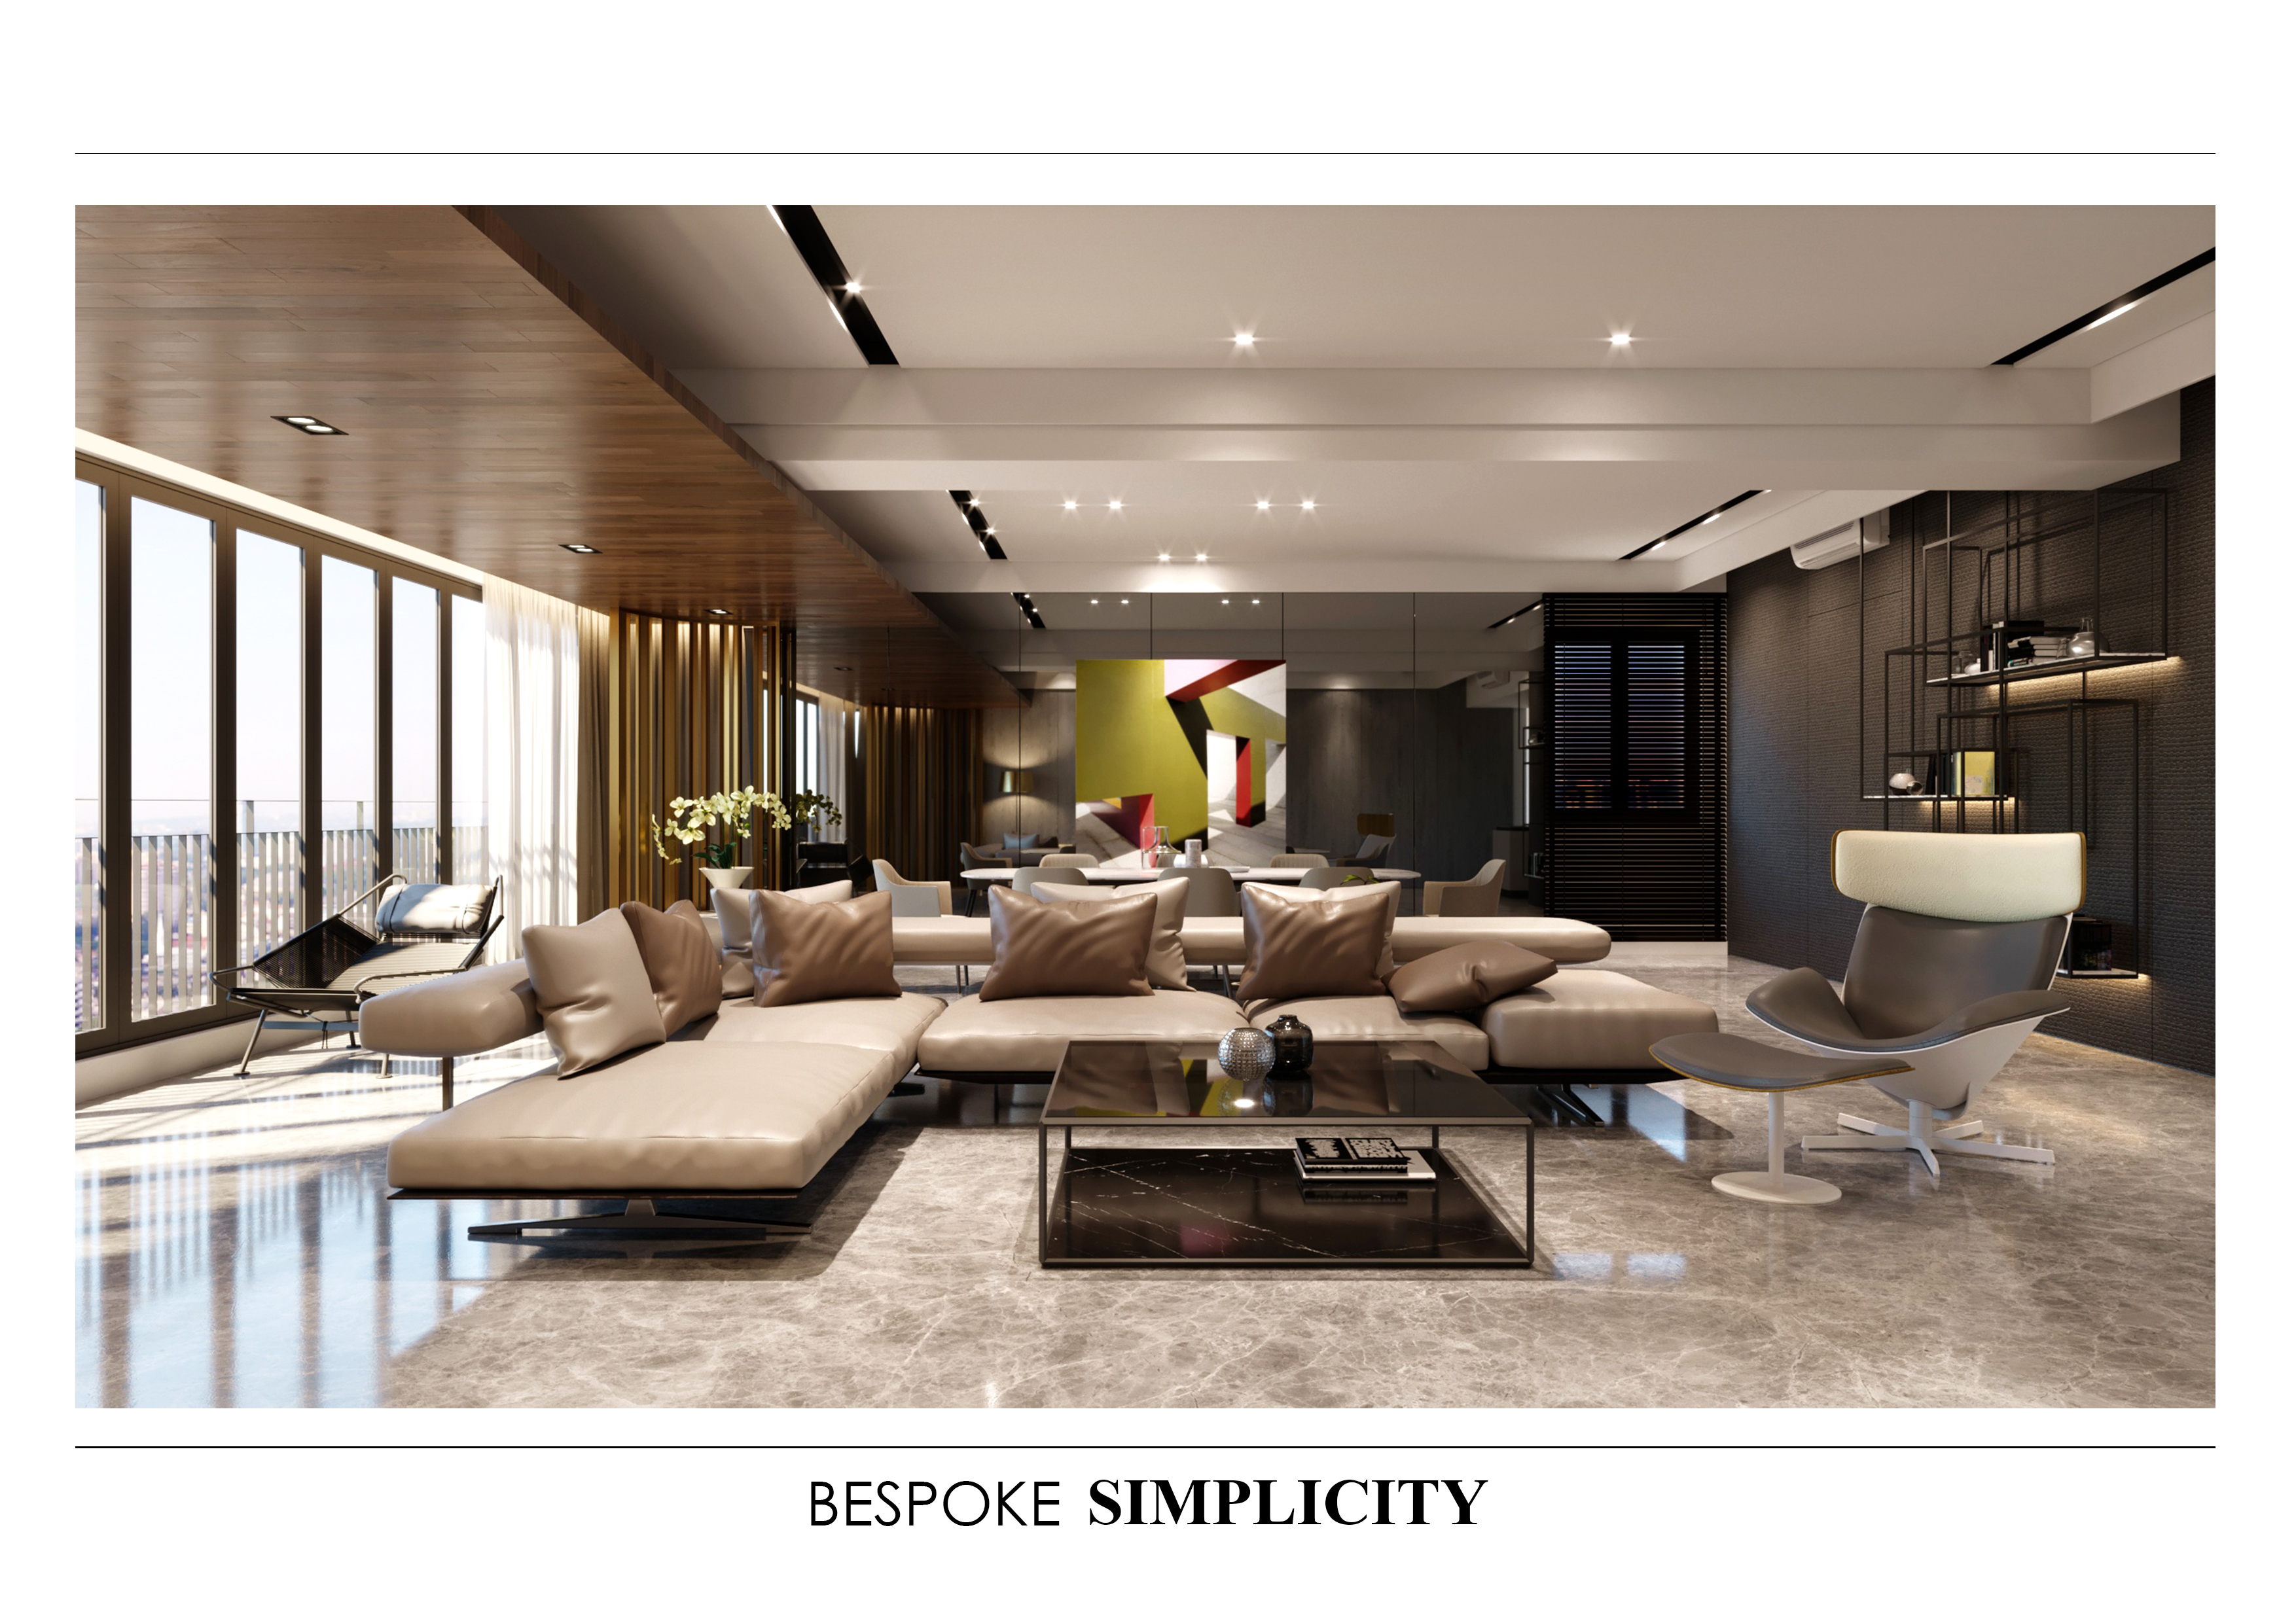 Interior Design Trends For The New Year Appreciate Fine Details And